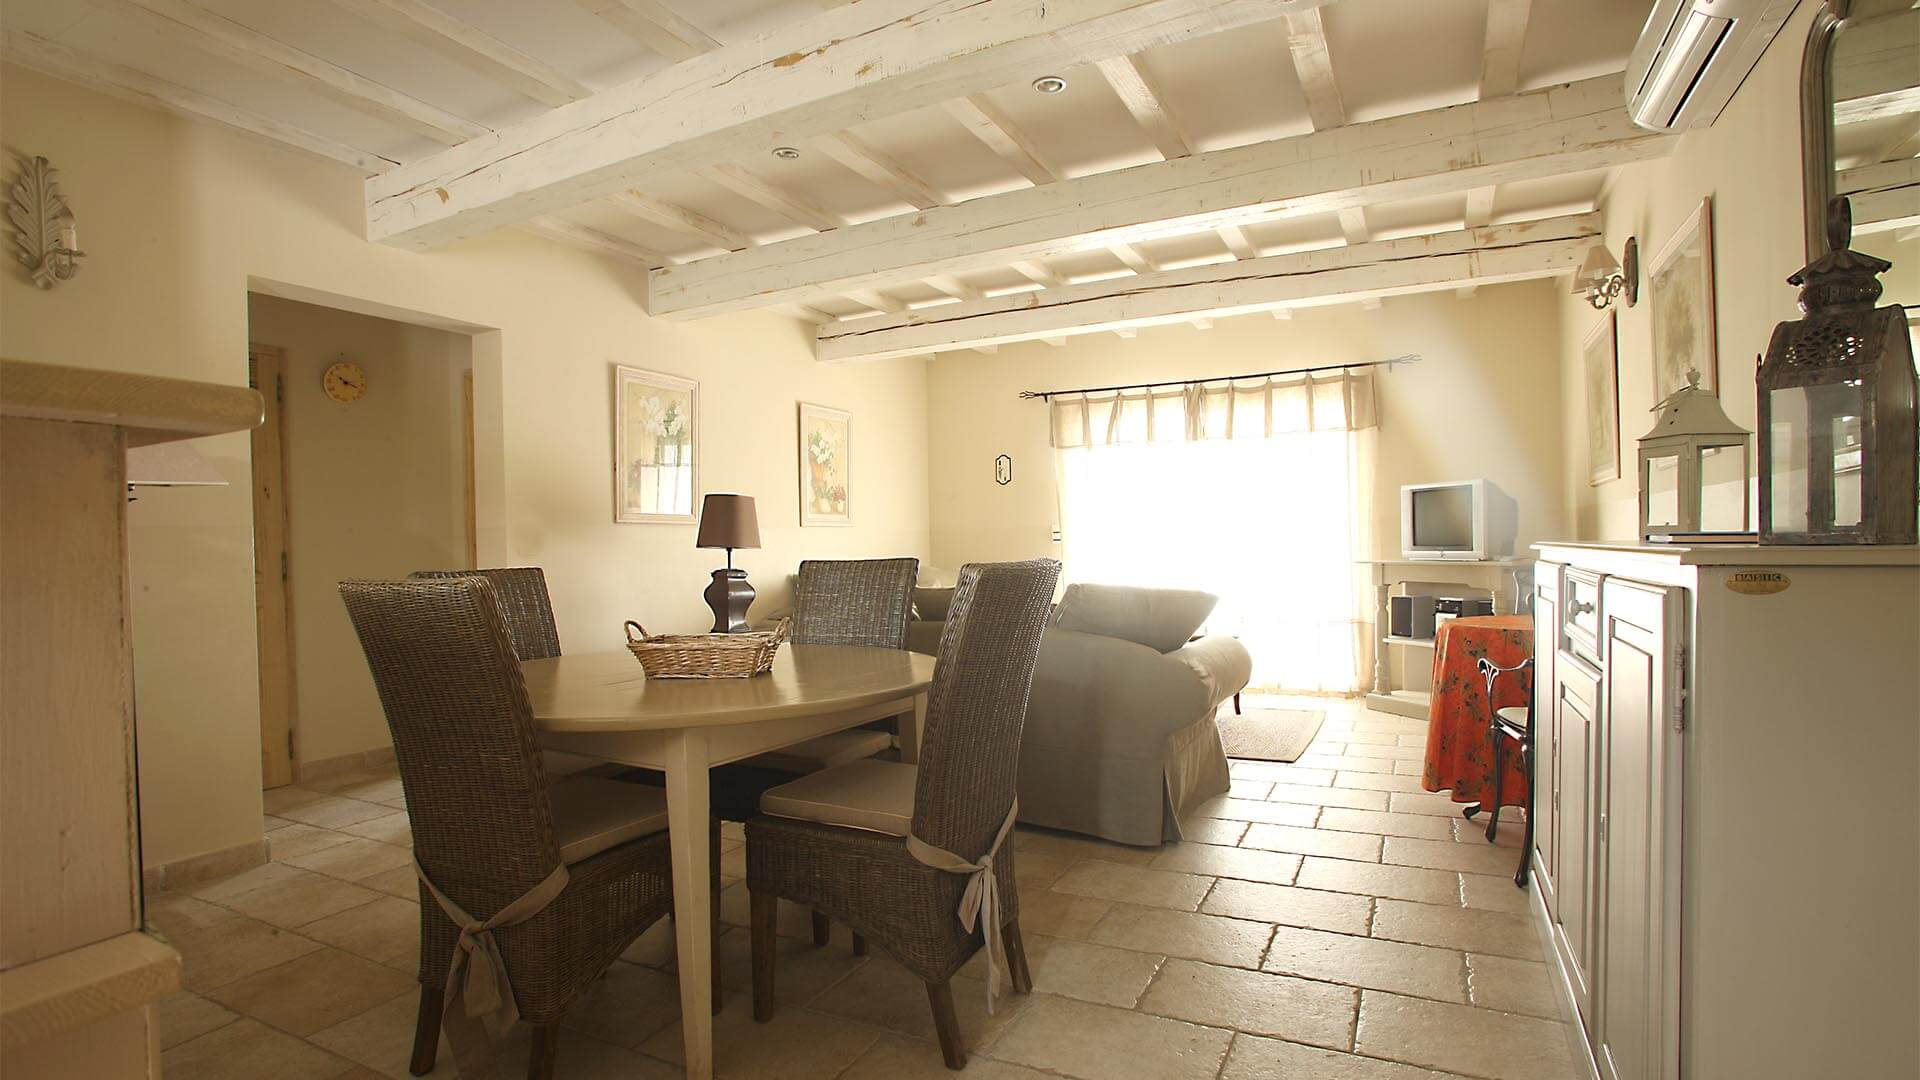 Holiday rental 2 bedroom villa in Luberon | Villa terre nature | Air conditioned dining and living room